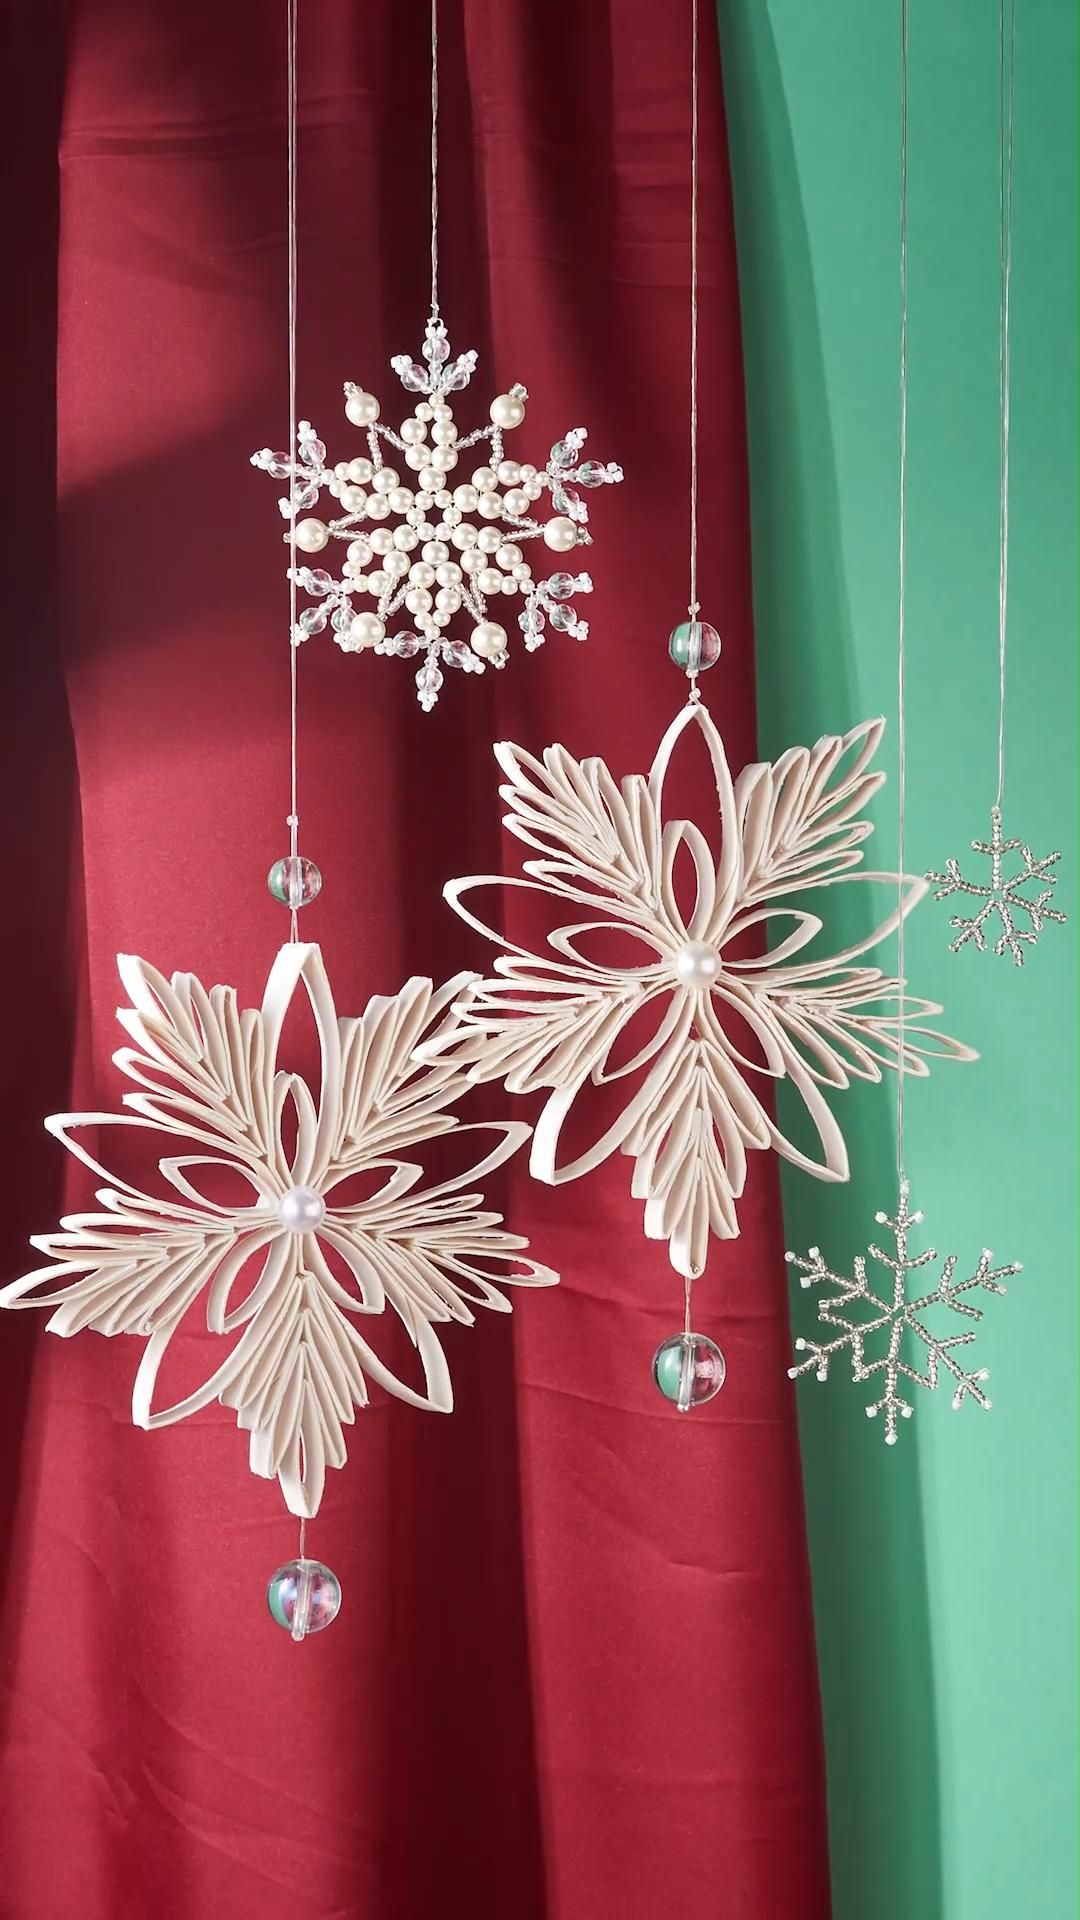 DIY Christmas Snow Flake Hanging Decorations Ornament for Xmas Jewelry making Pandahall designs